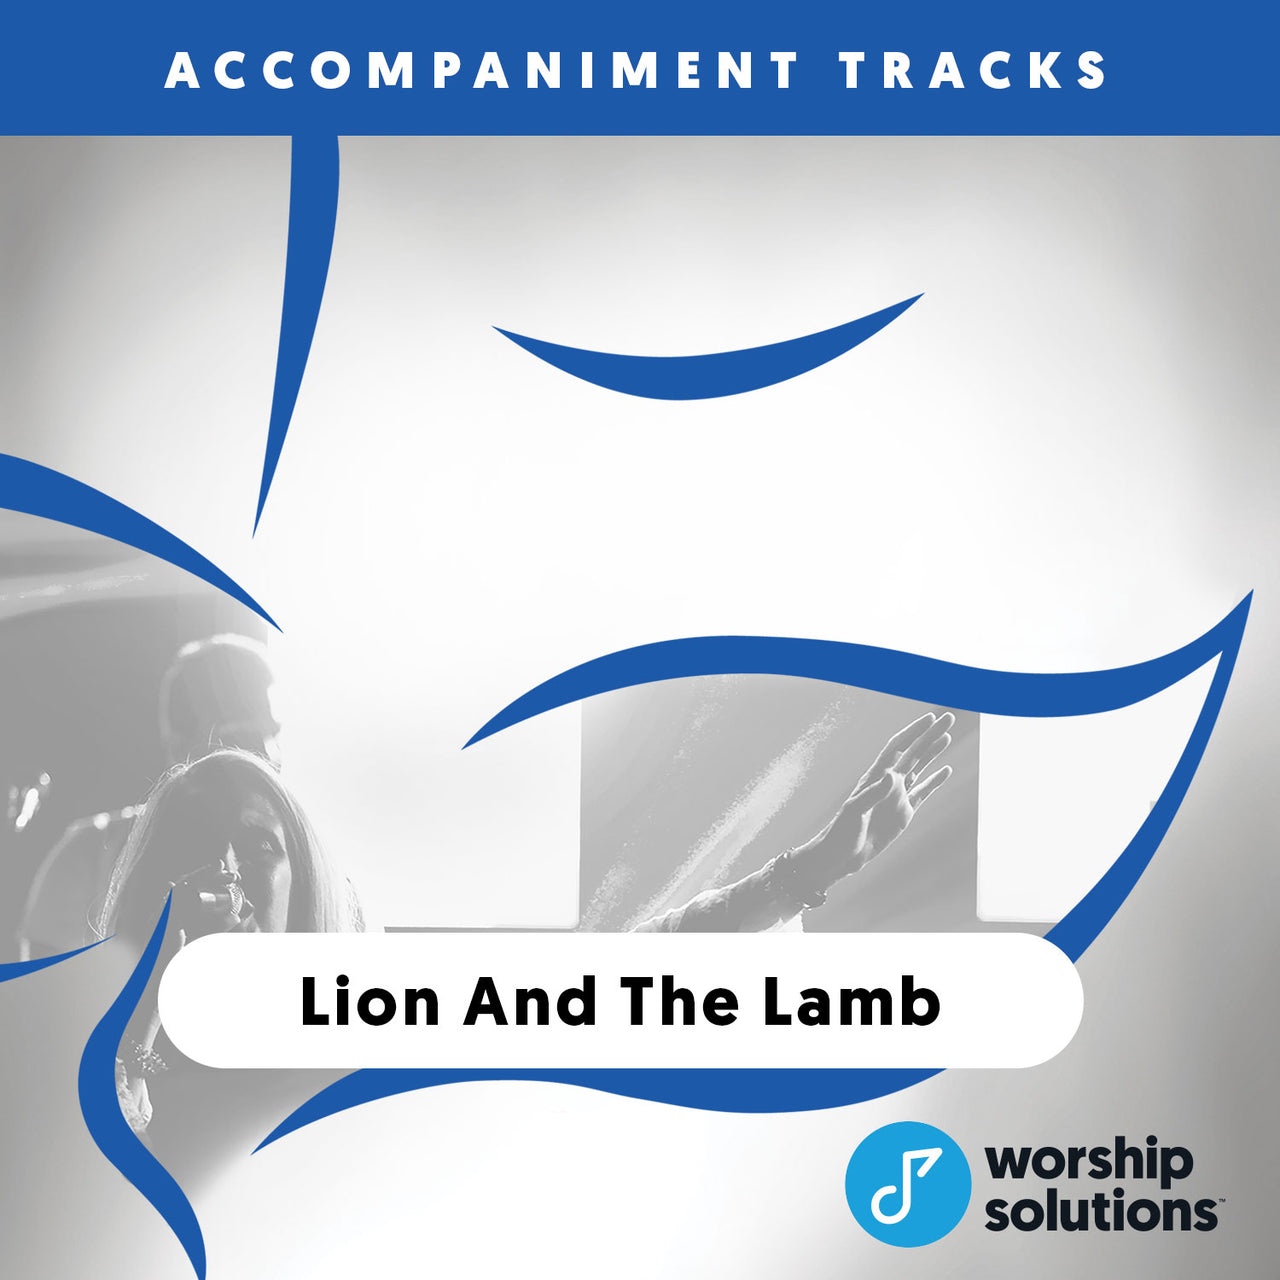 Lion and The Lamb, Accompaniment Track